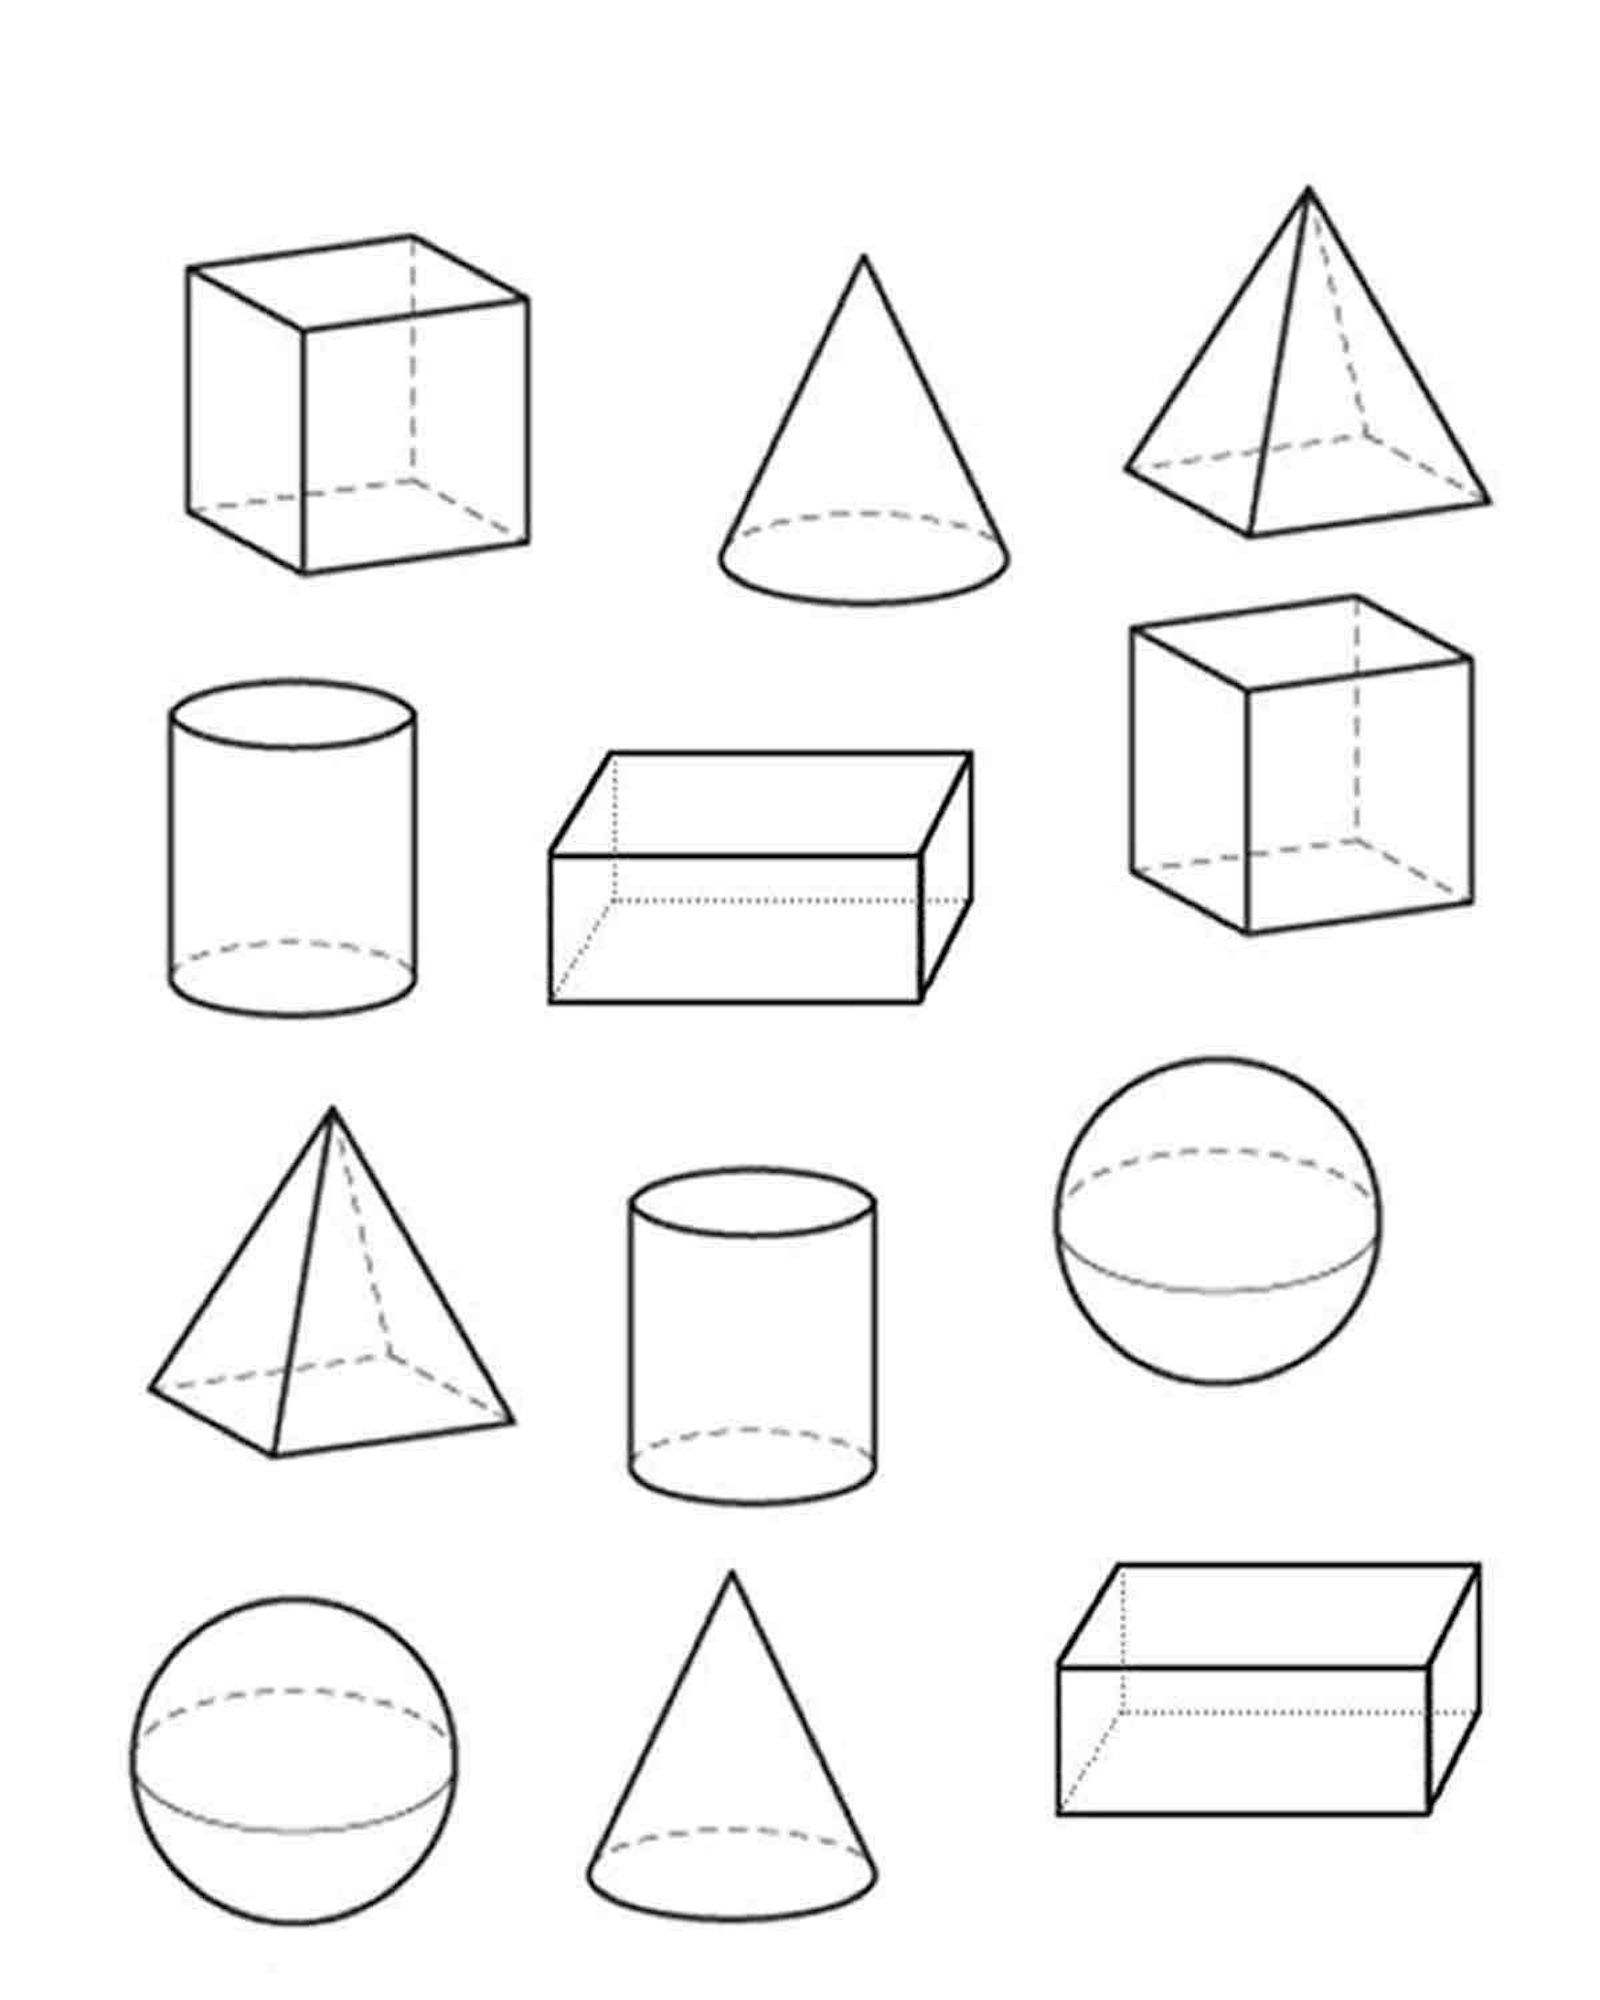 3D Shapes And Dozens More Themed Top 10 Coloring Page ...